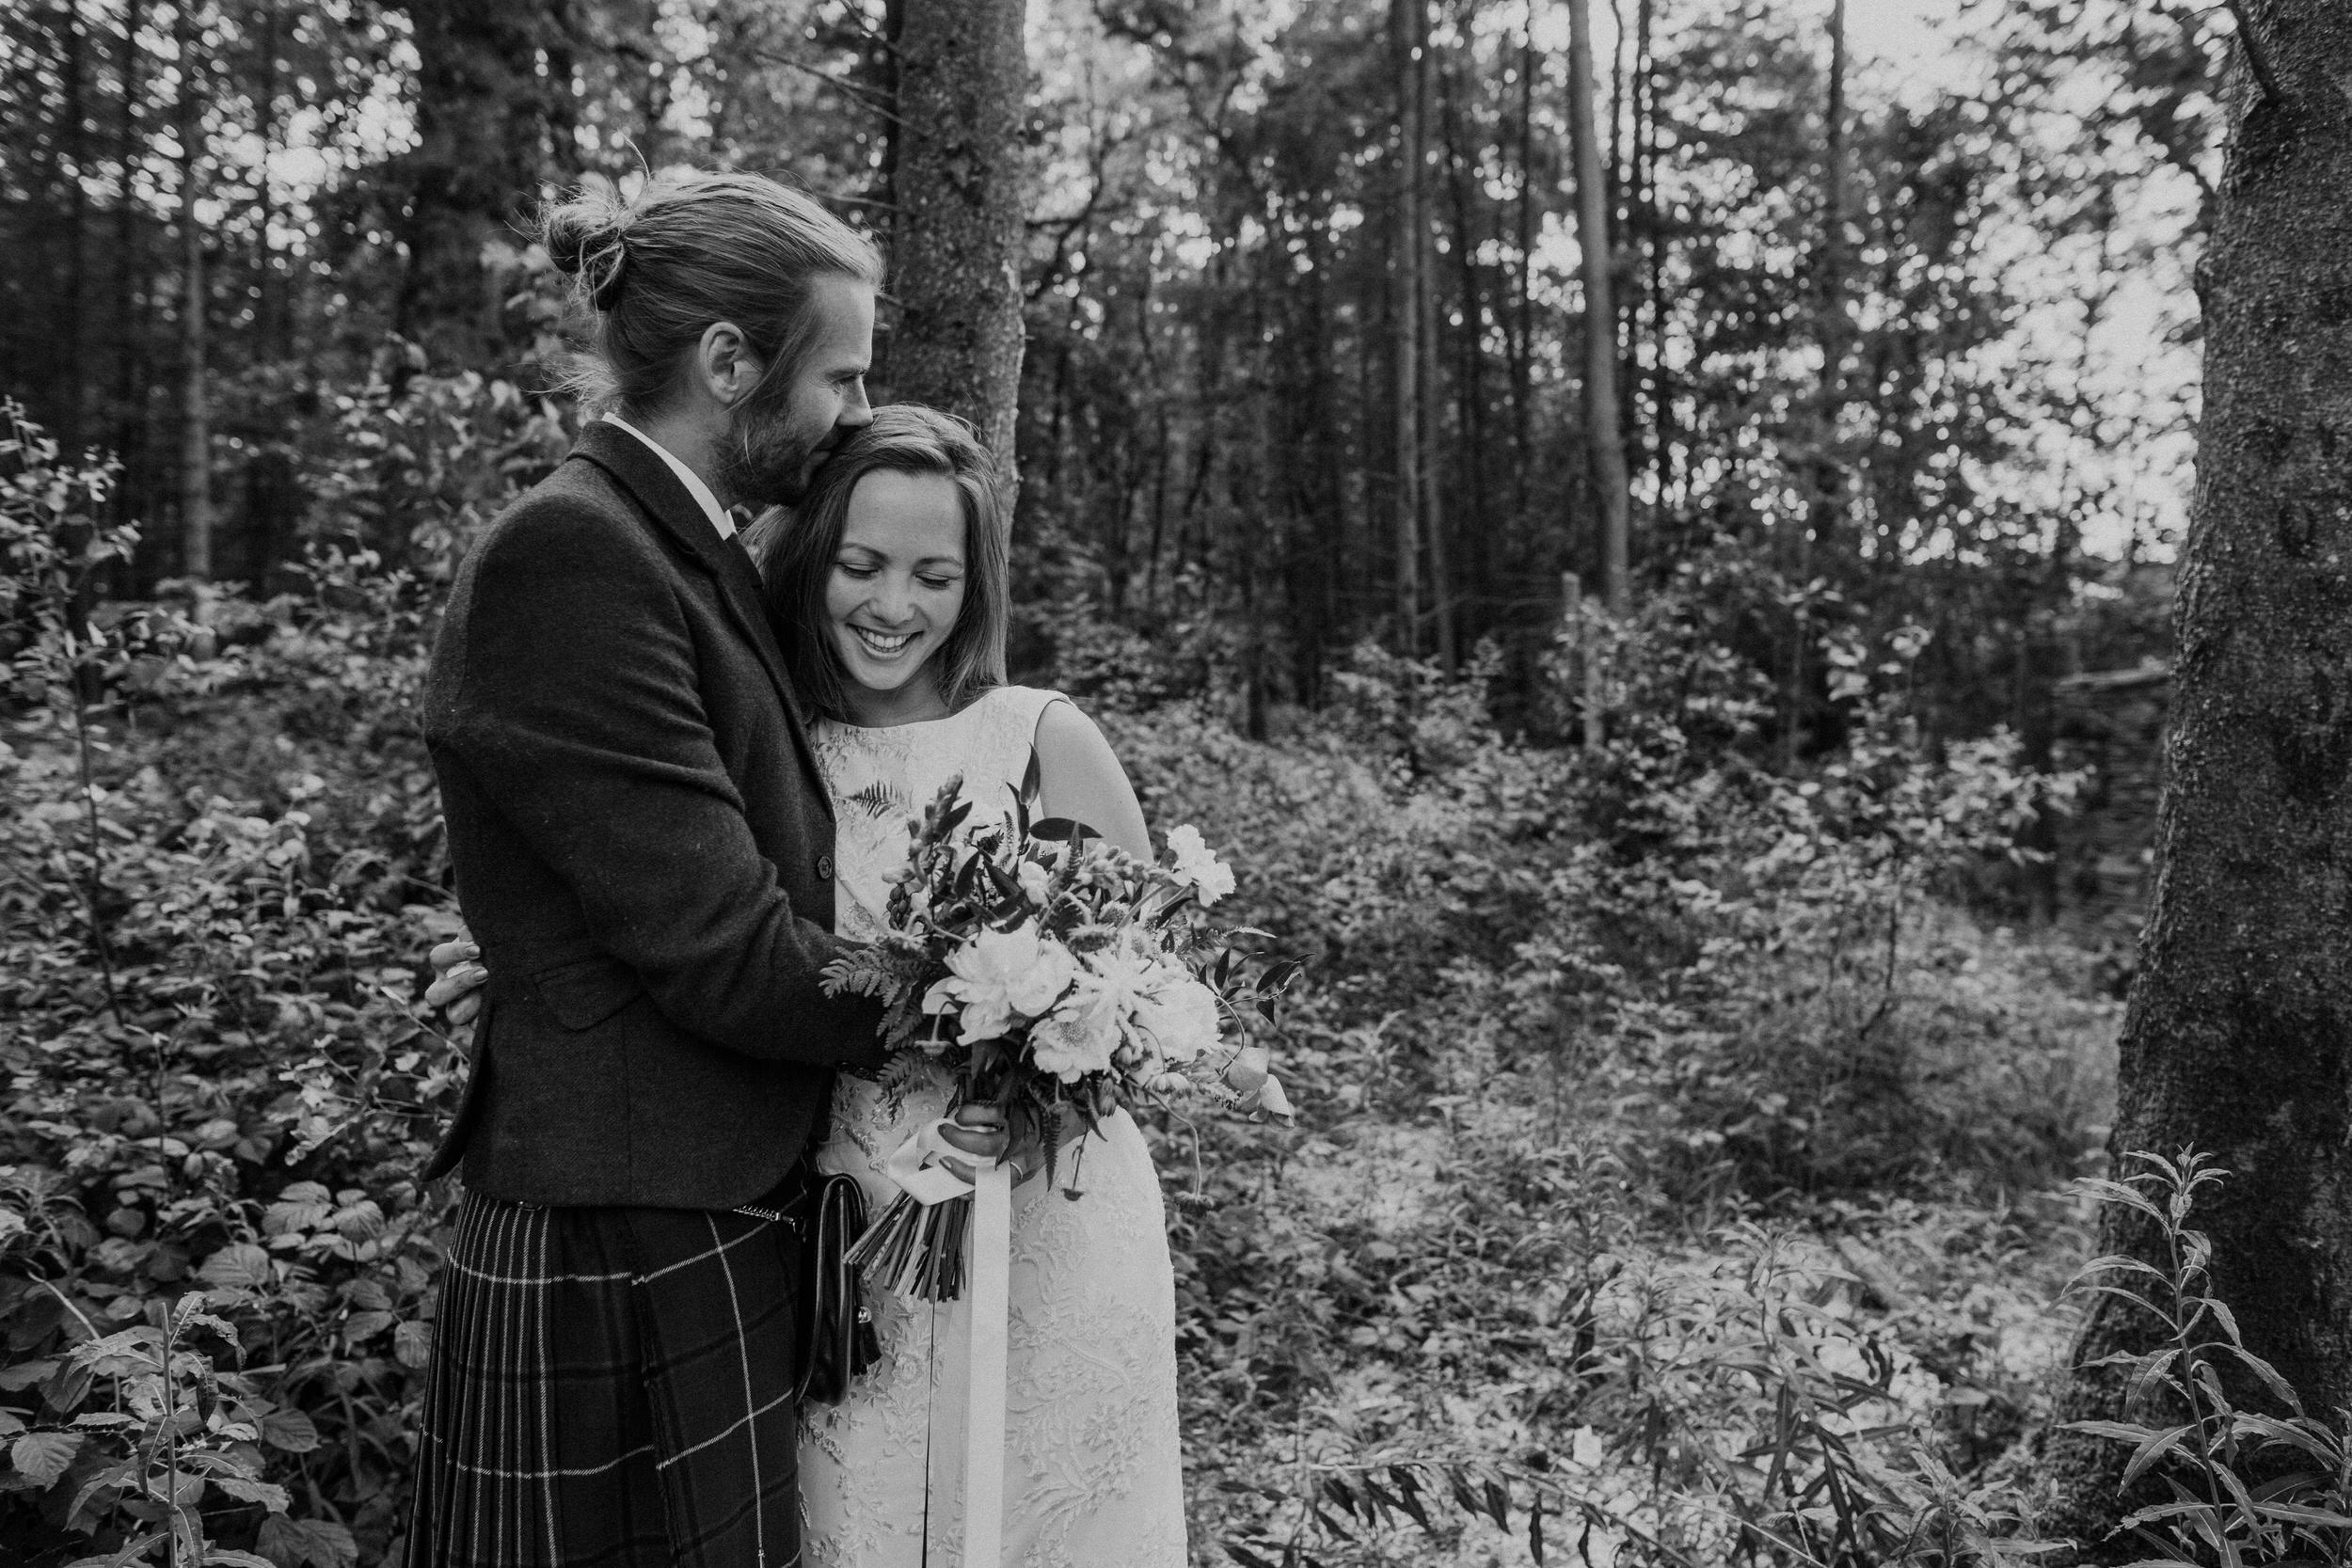 Alternative Quirky Wedding Photographer Scotland Borders Edinburgh 076.jpg